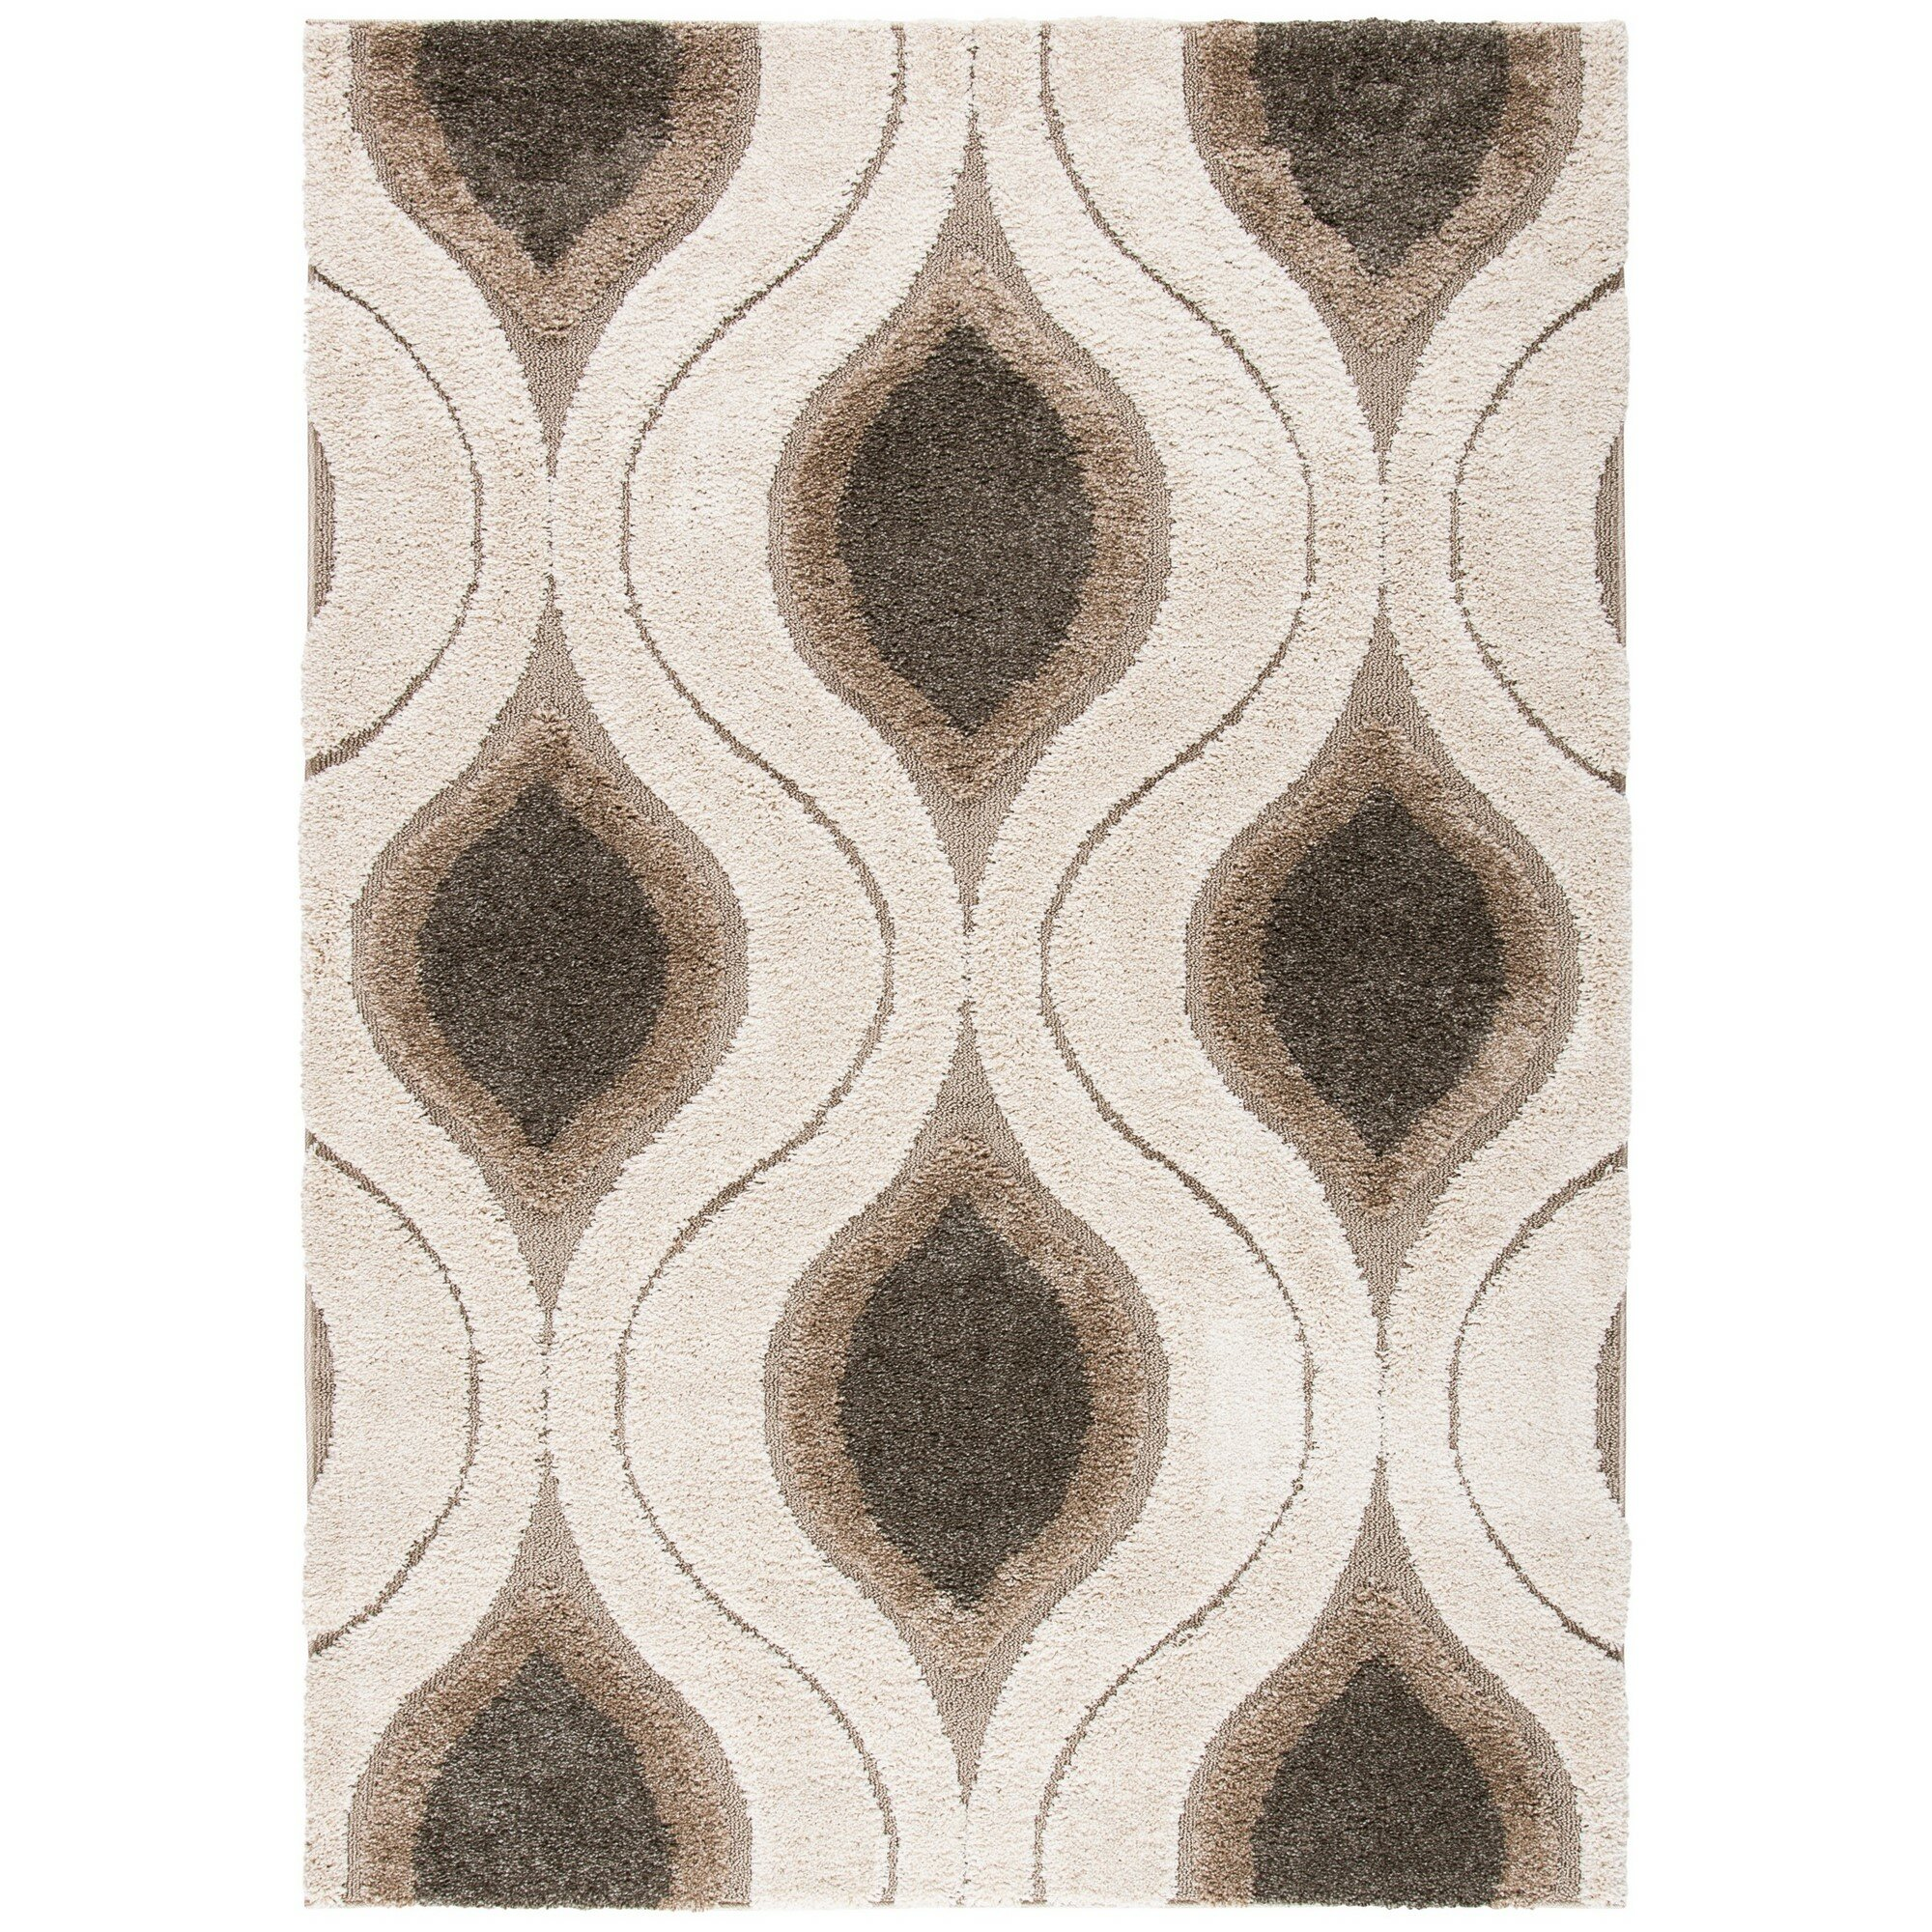 Rugs Carpets Traditional Cream Grey Rug Quality Carved Living Room Rugs Moroccan Trellis Mat Home Furniture Diy Beautyandbeauty It